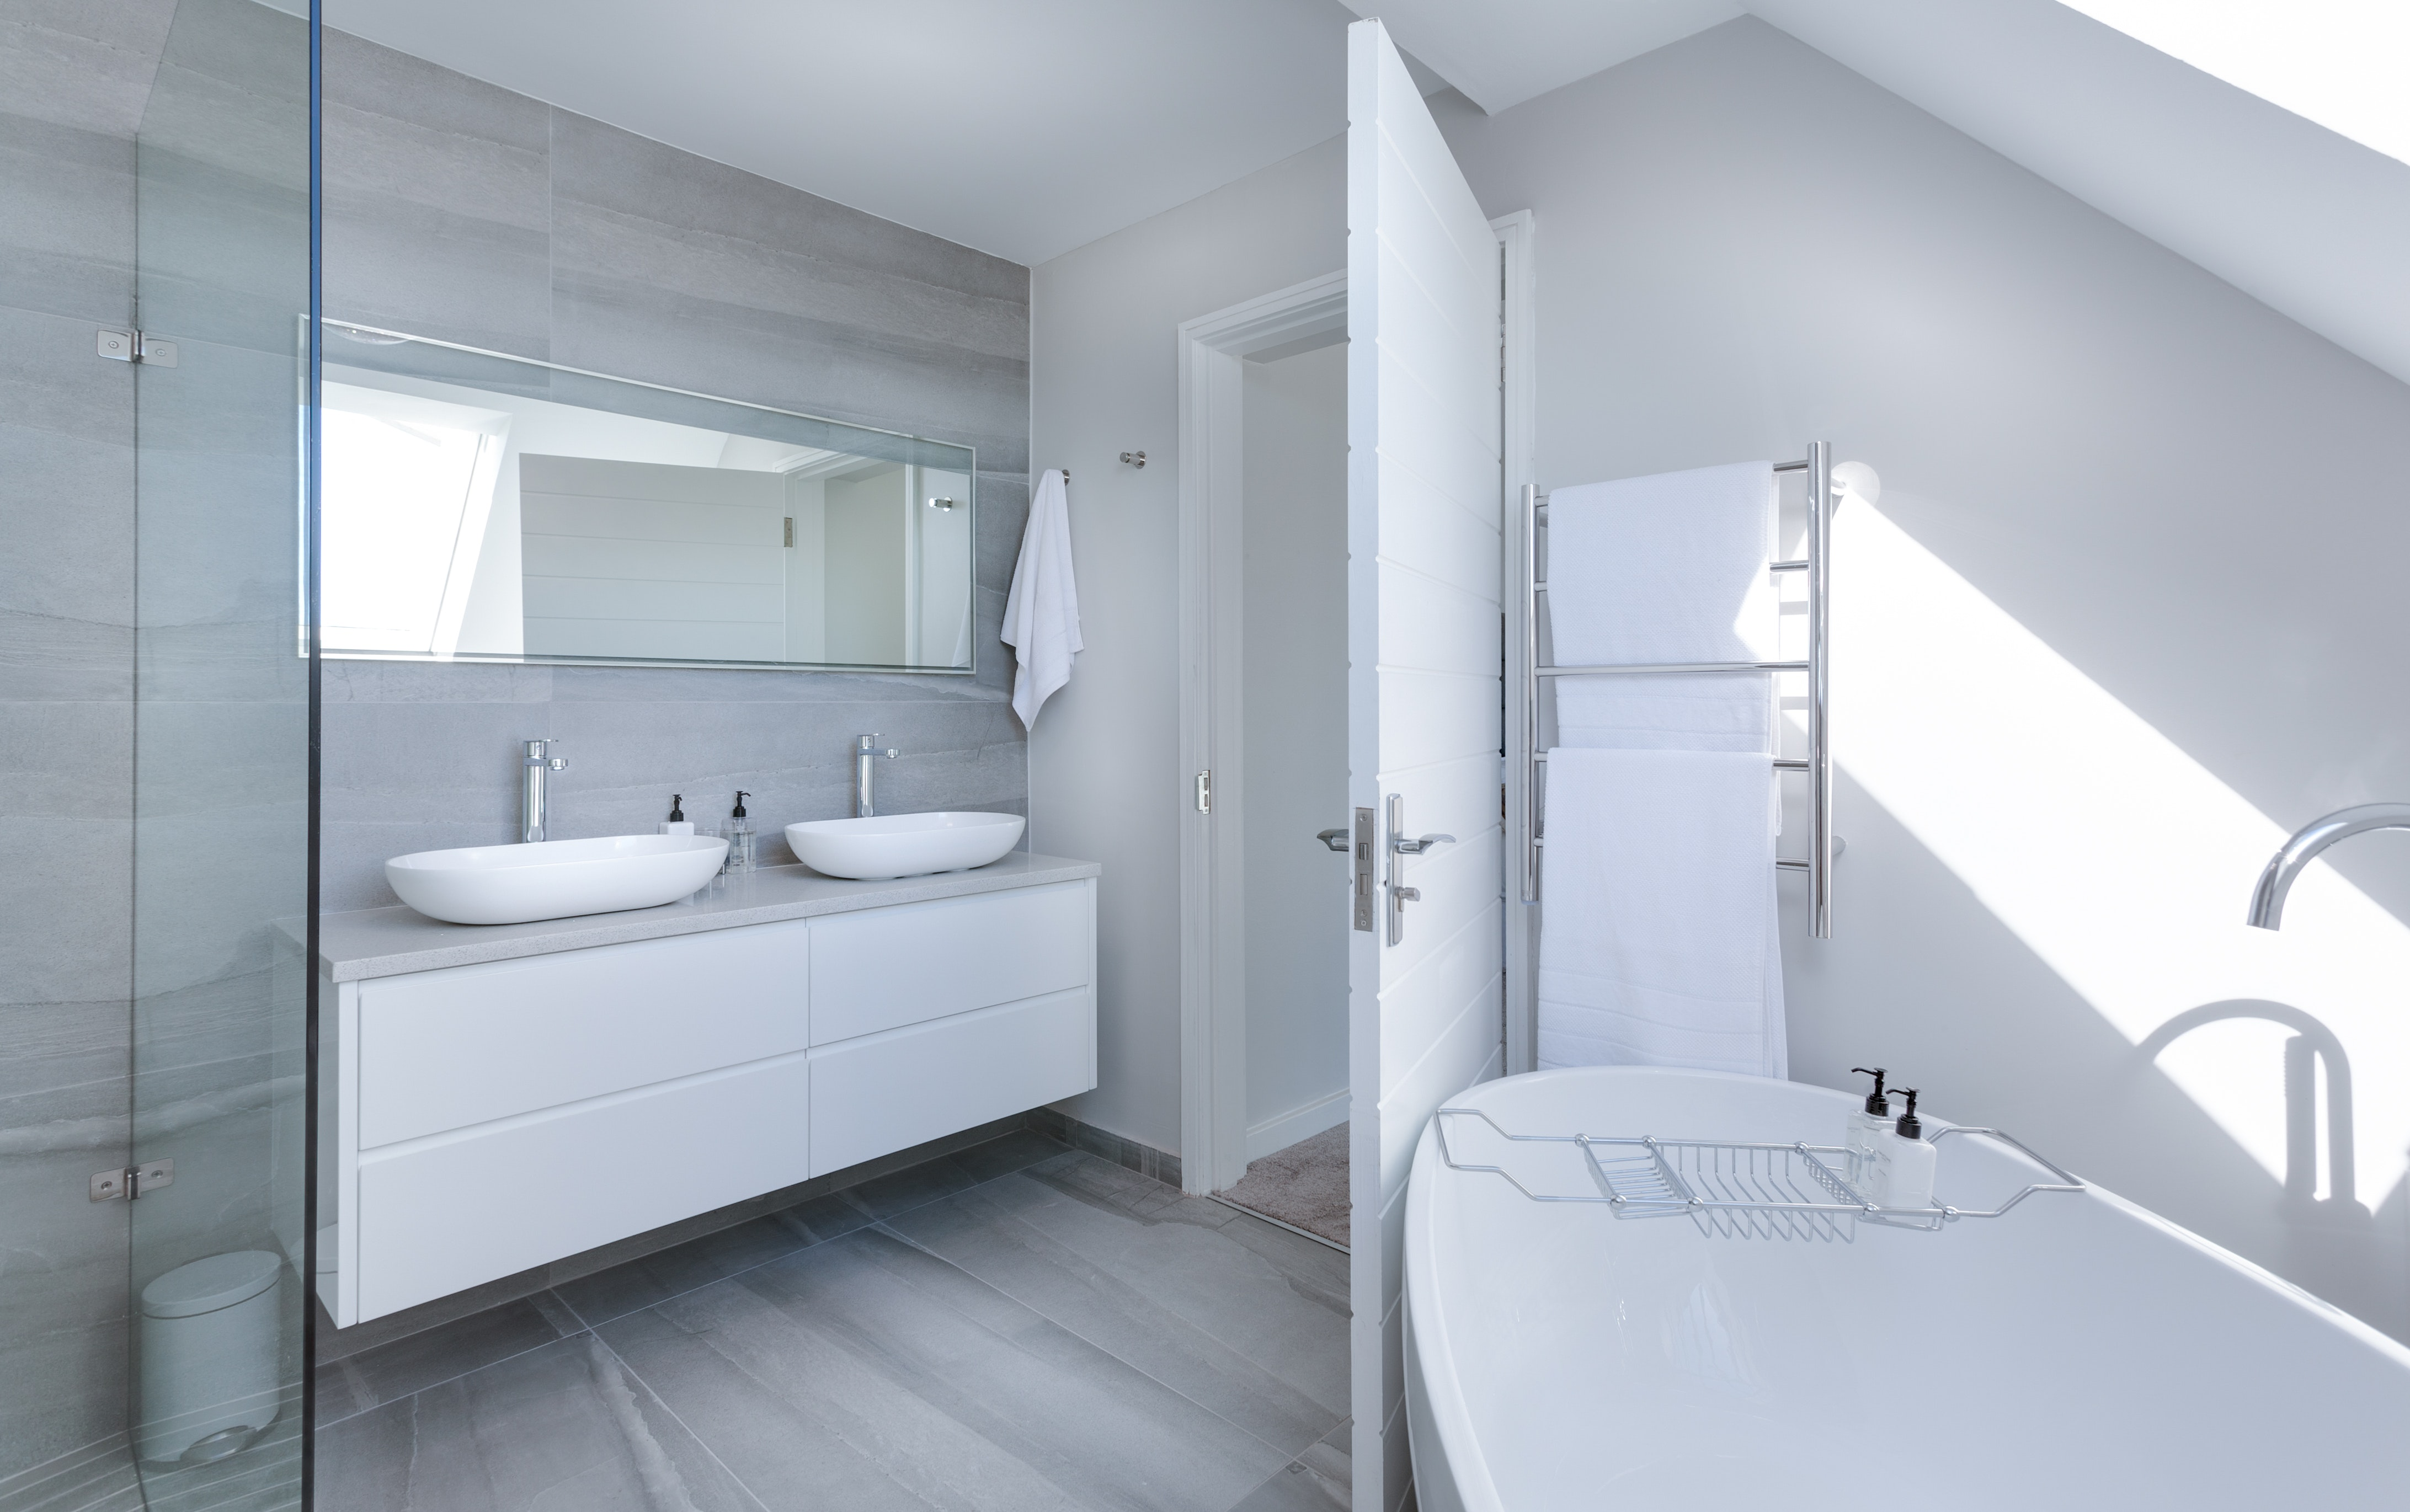 architecture-bath-bathroom-1454804.jpg